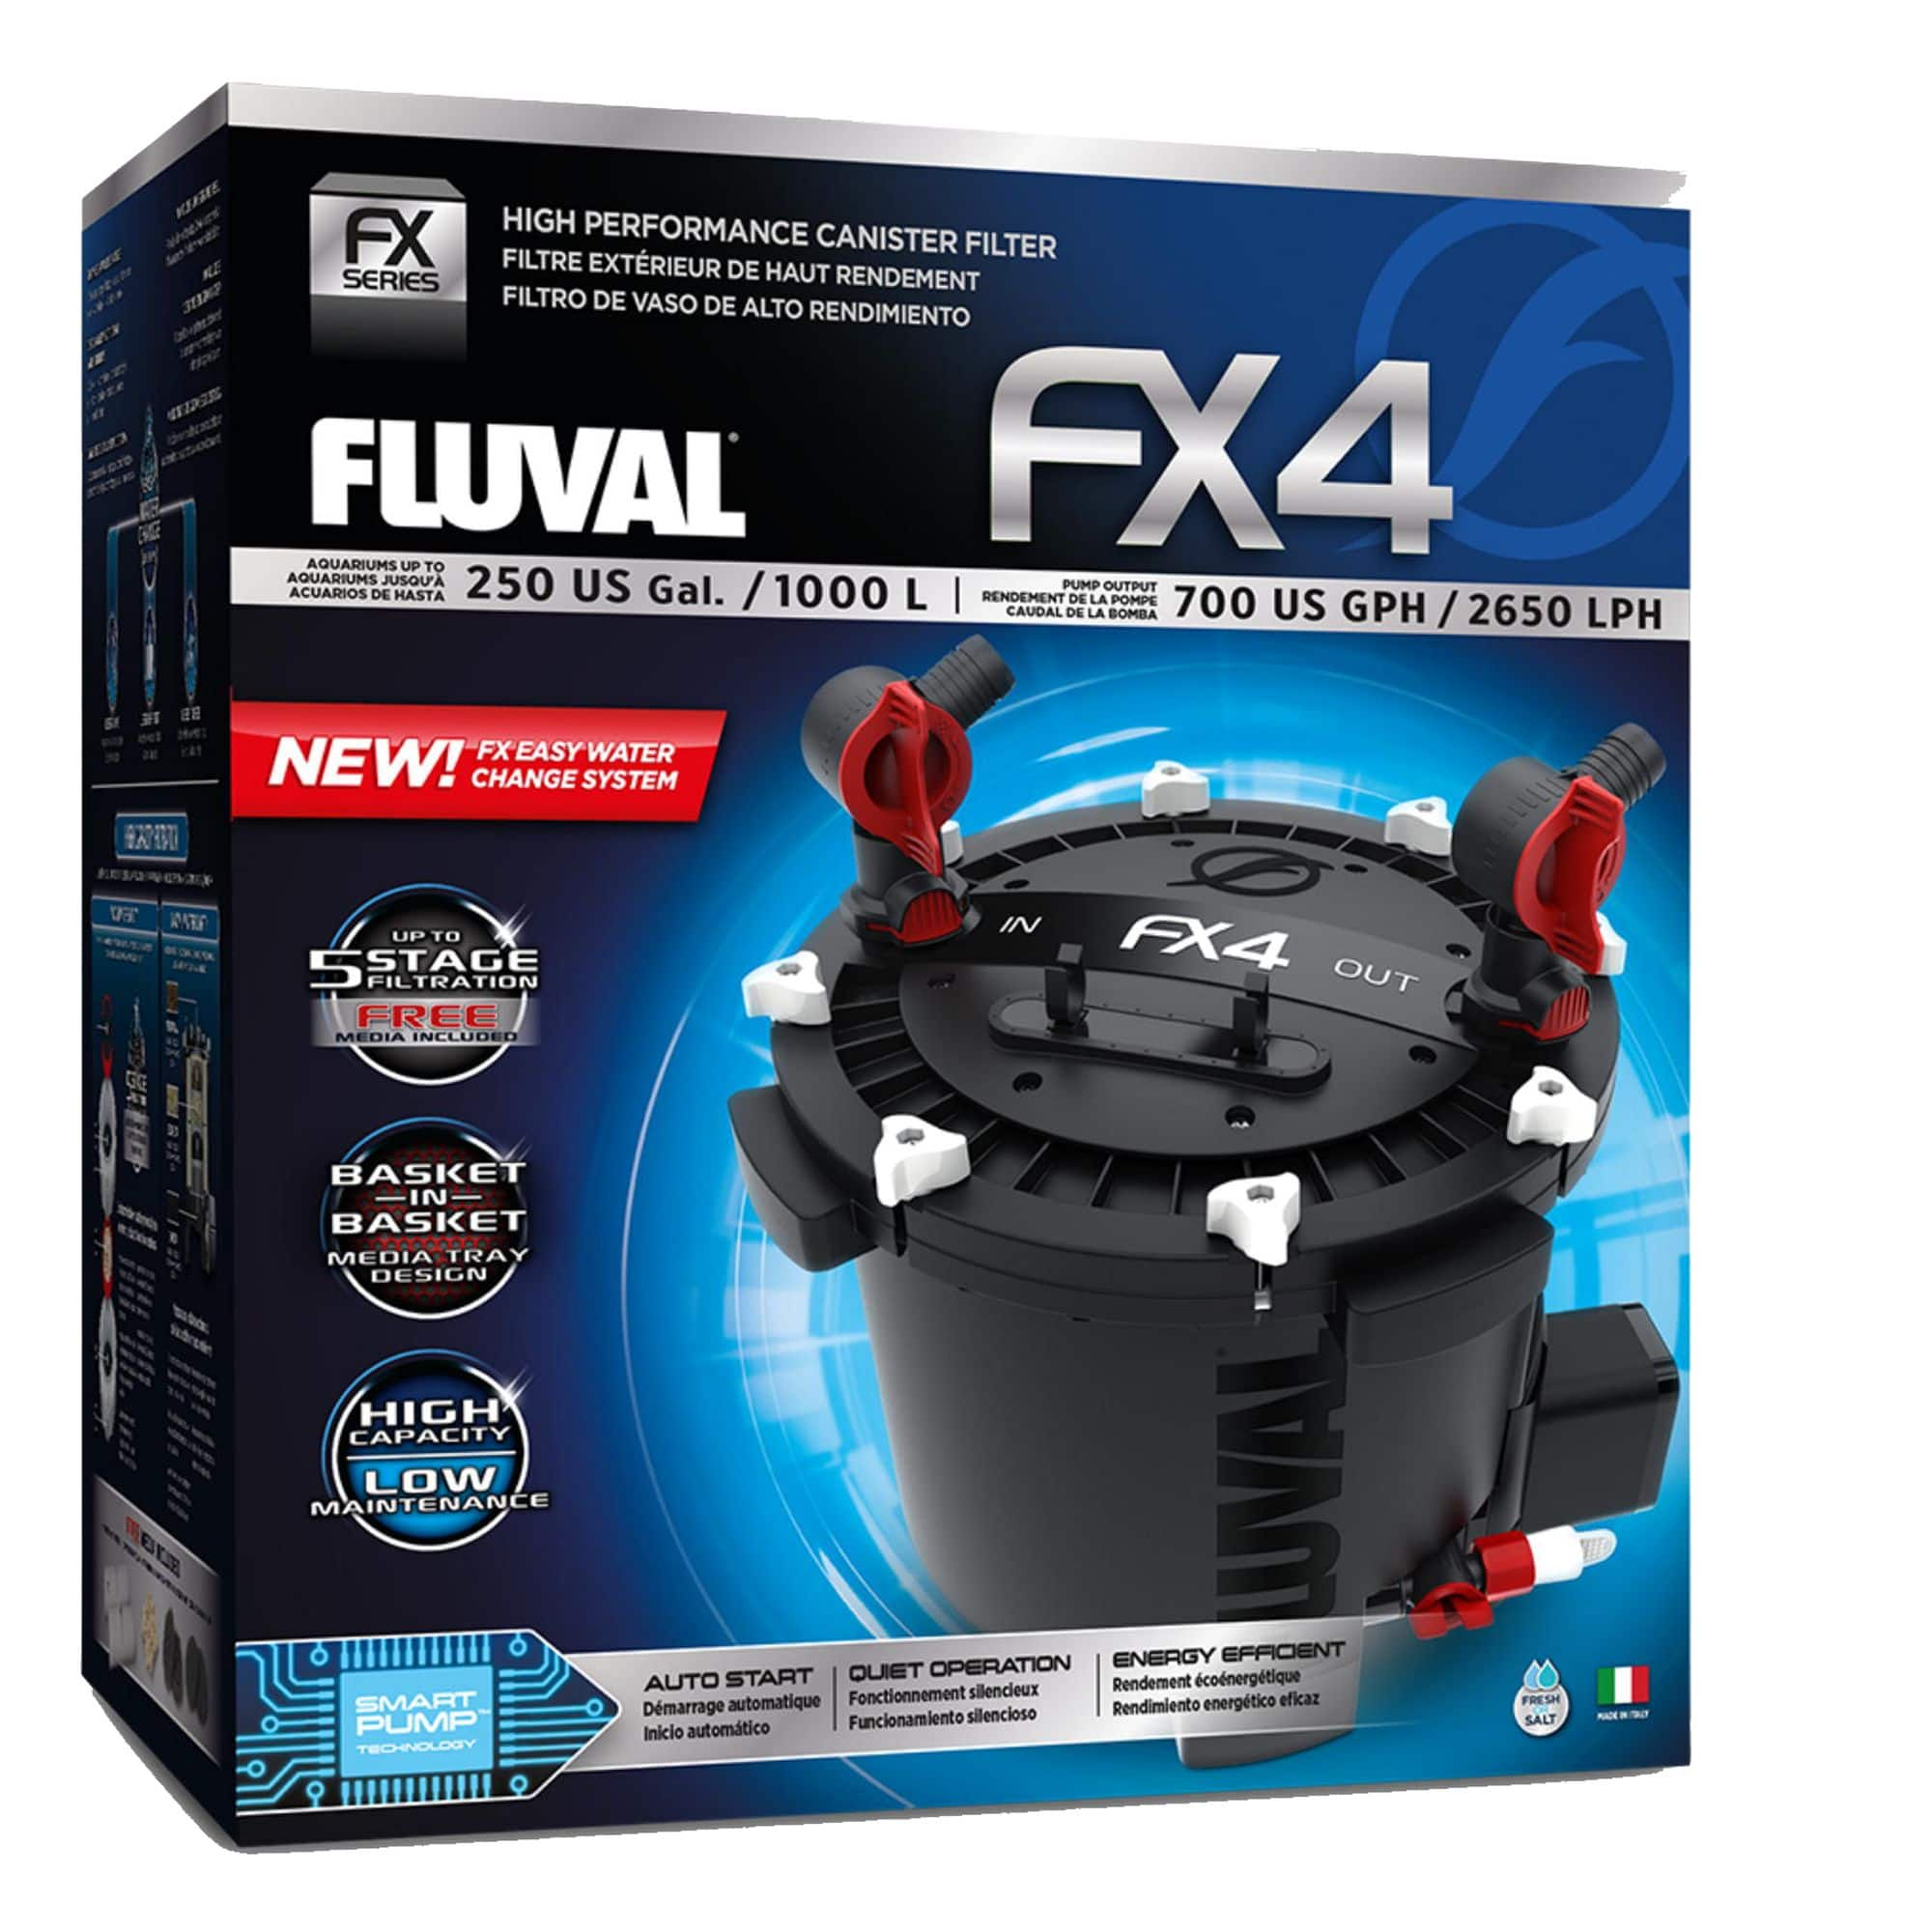 Fluval FX Series Filters $139.99